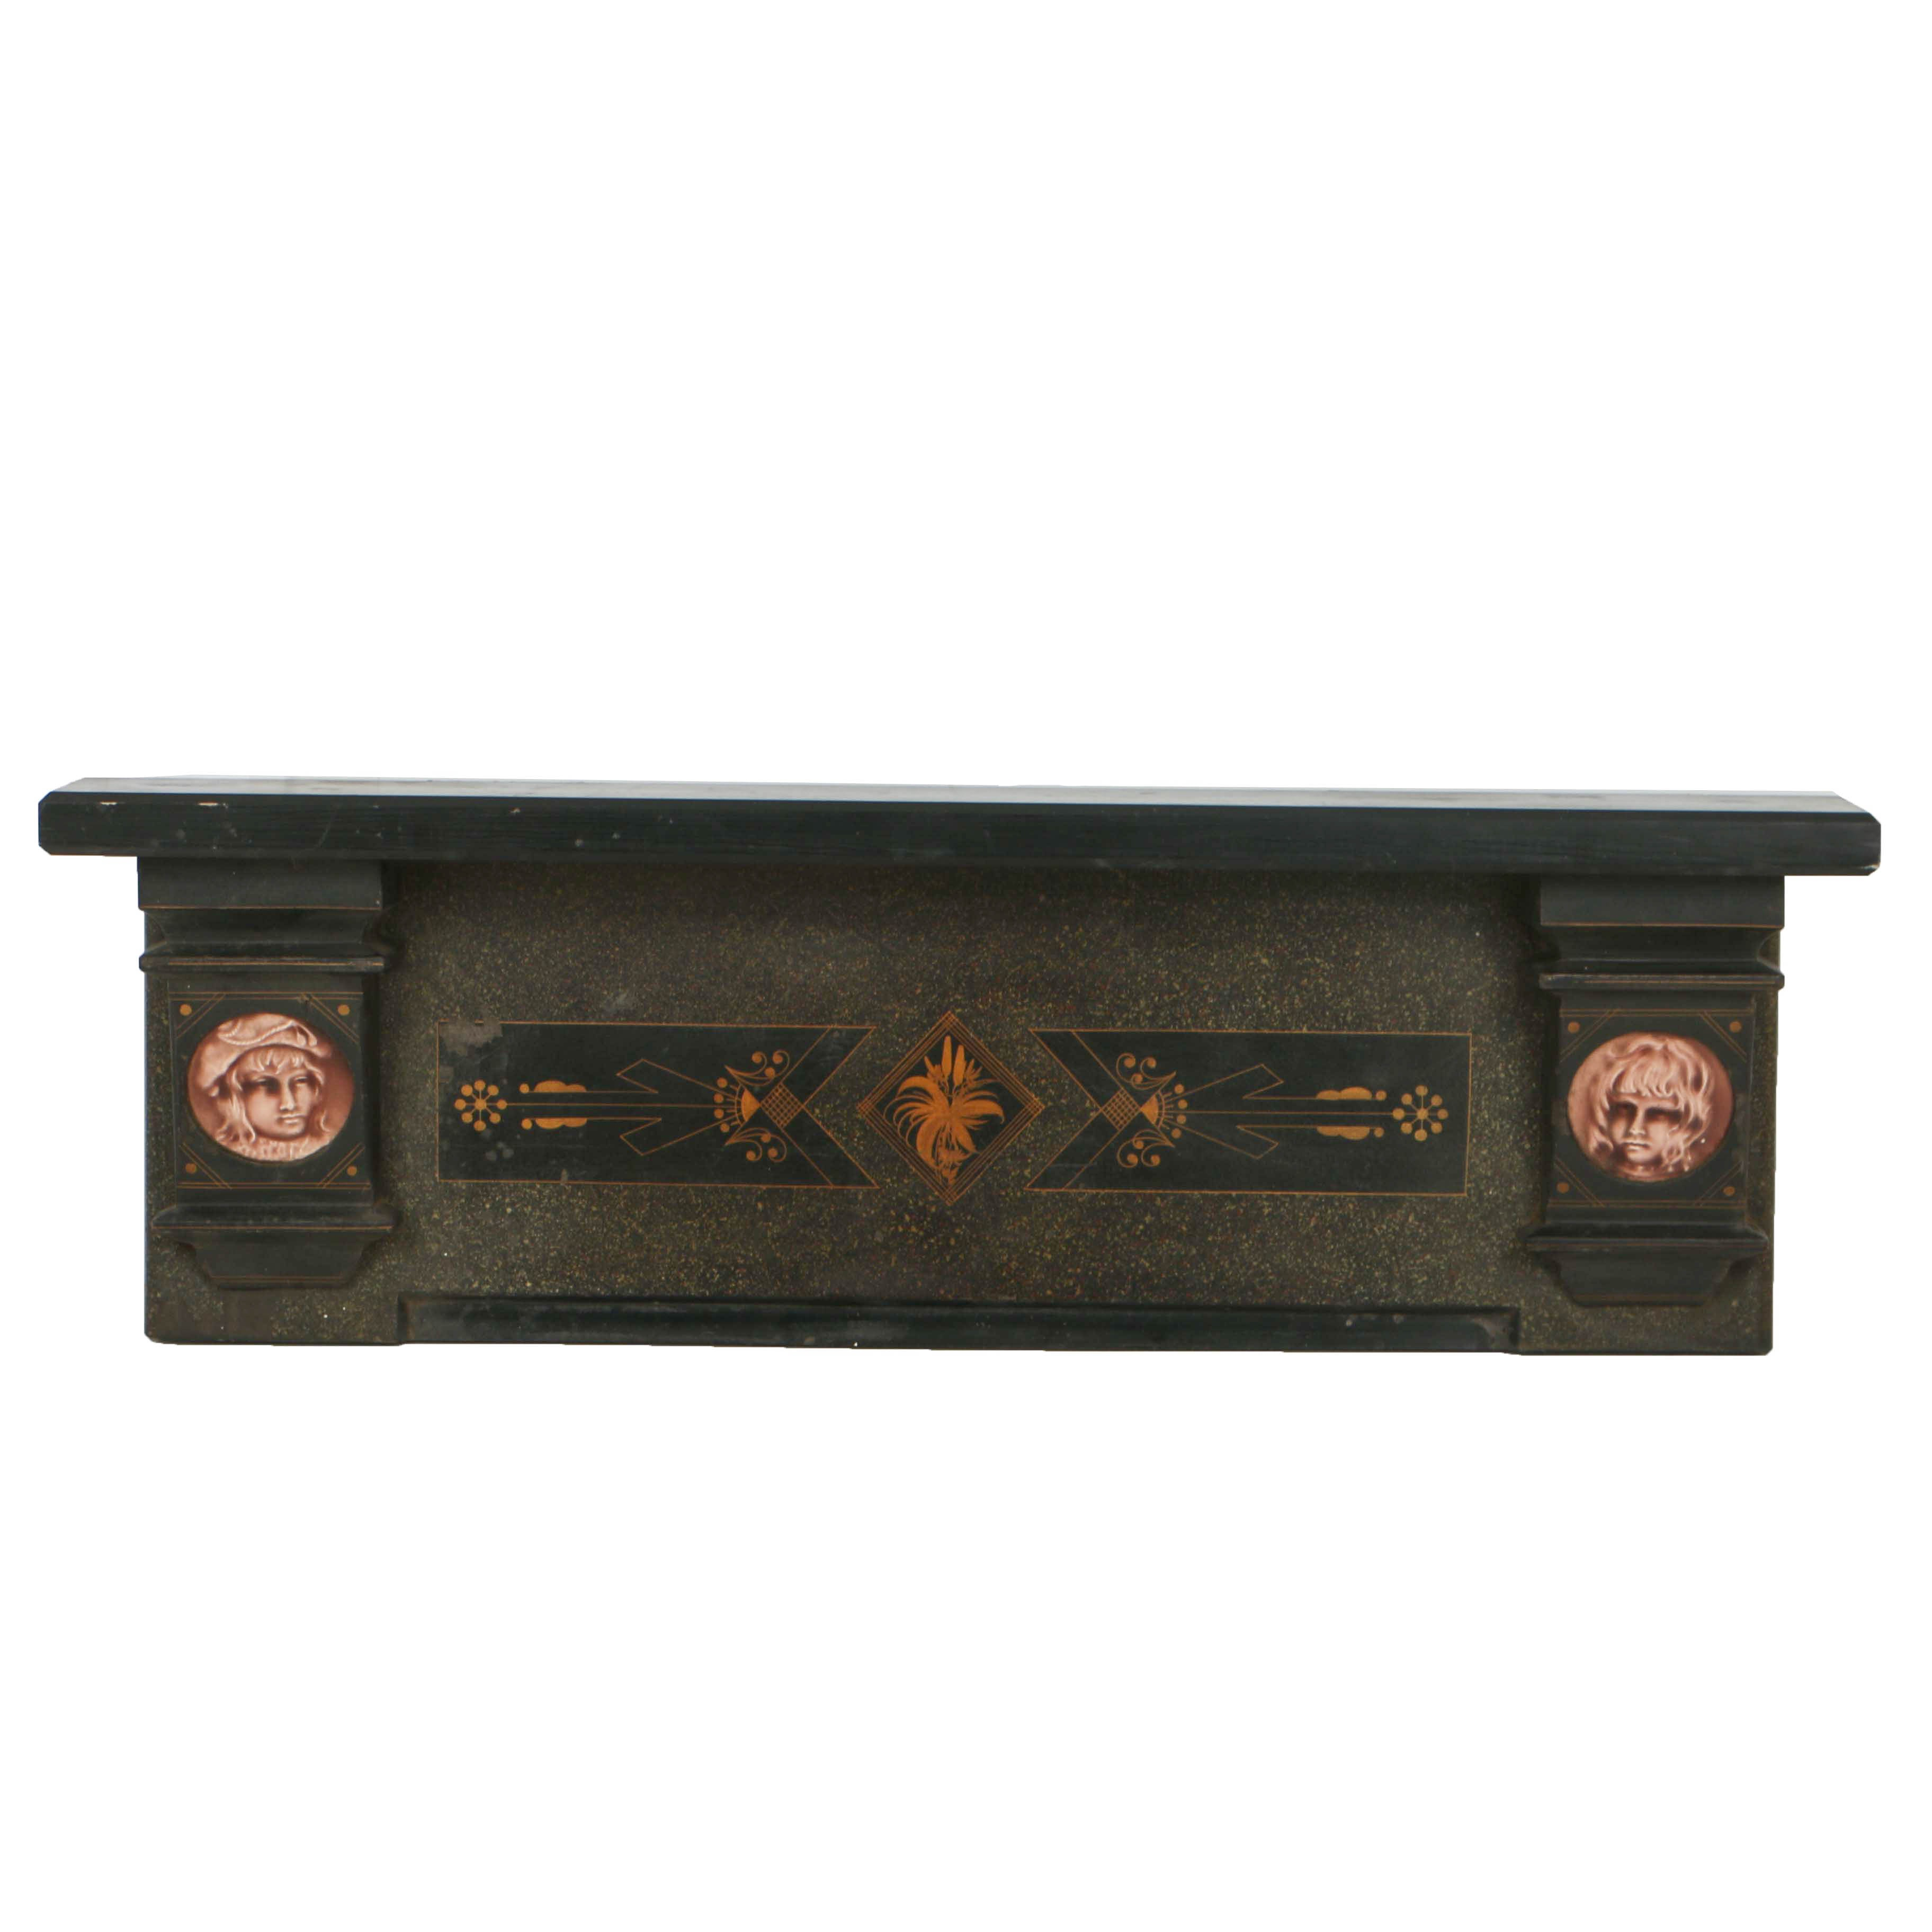 Antique Victorian Eastlake Cast Iron and Wood Wall Shelf with Ceramic Plaques